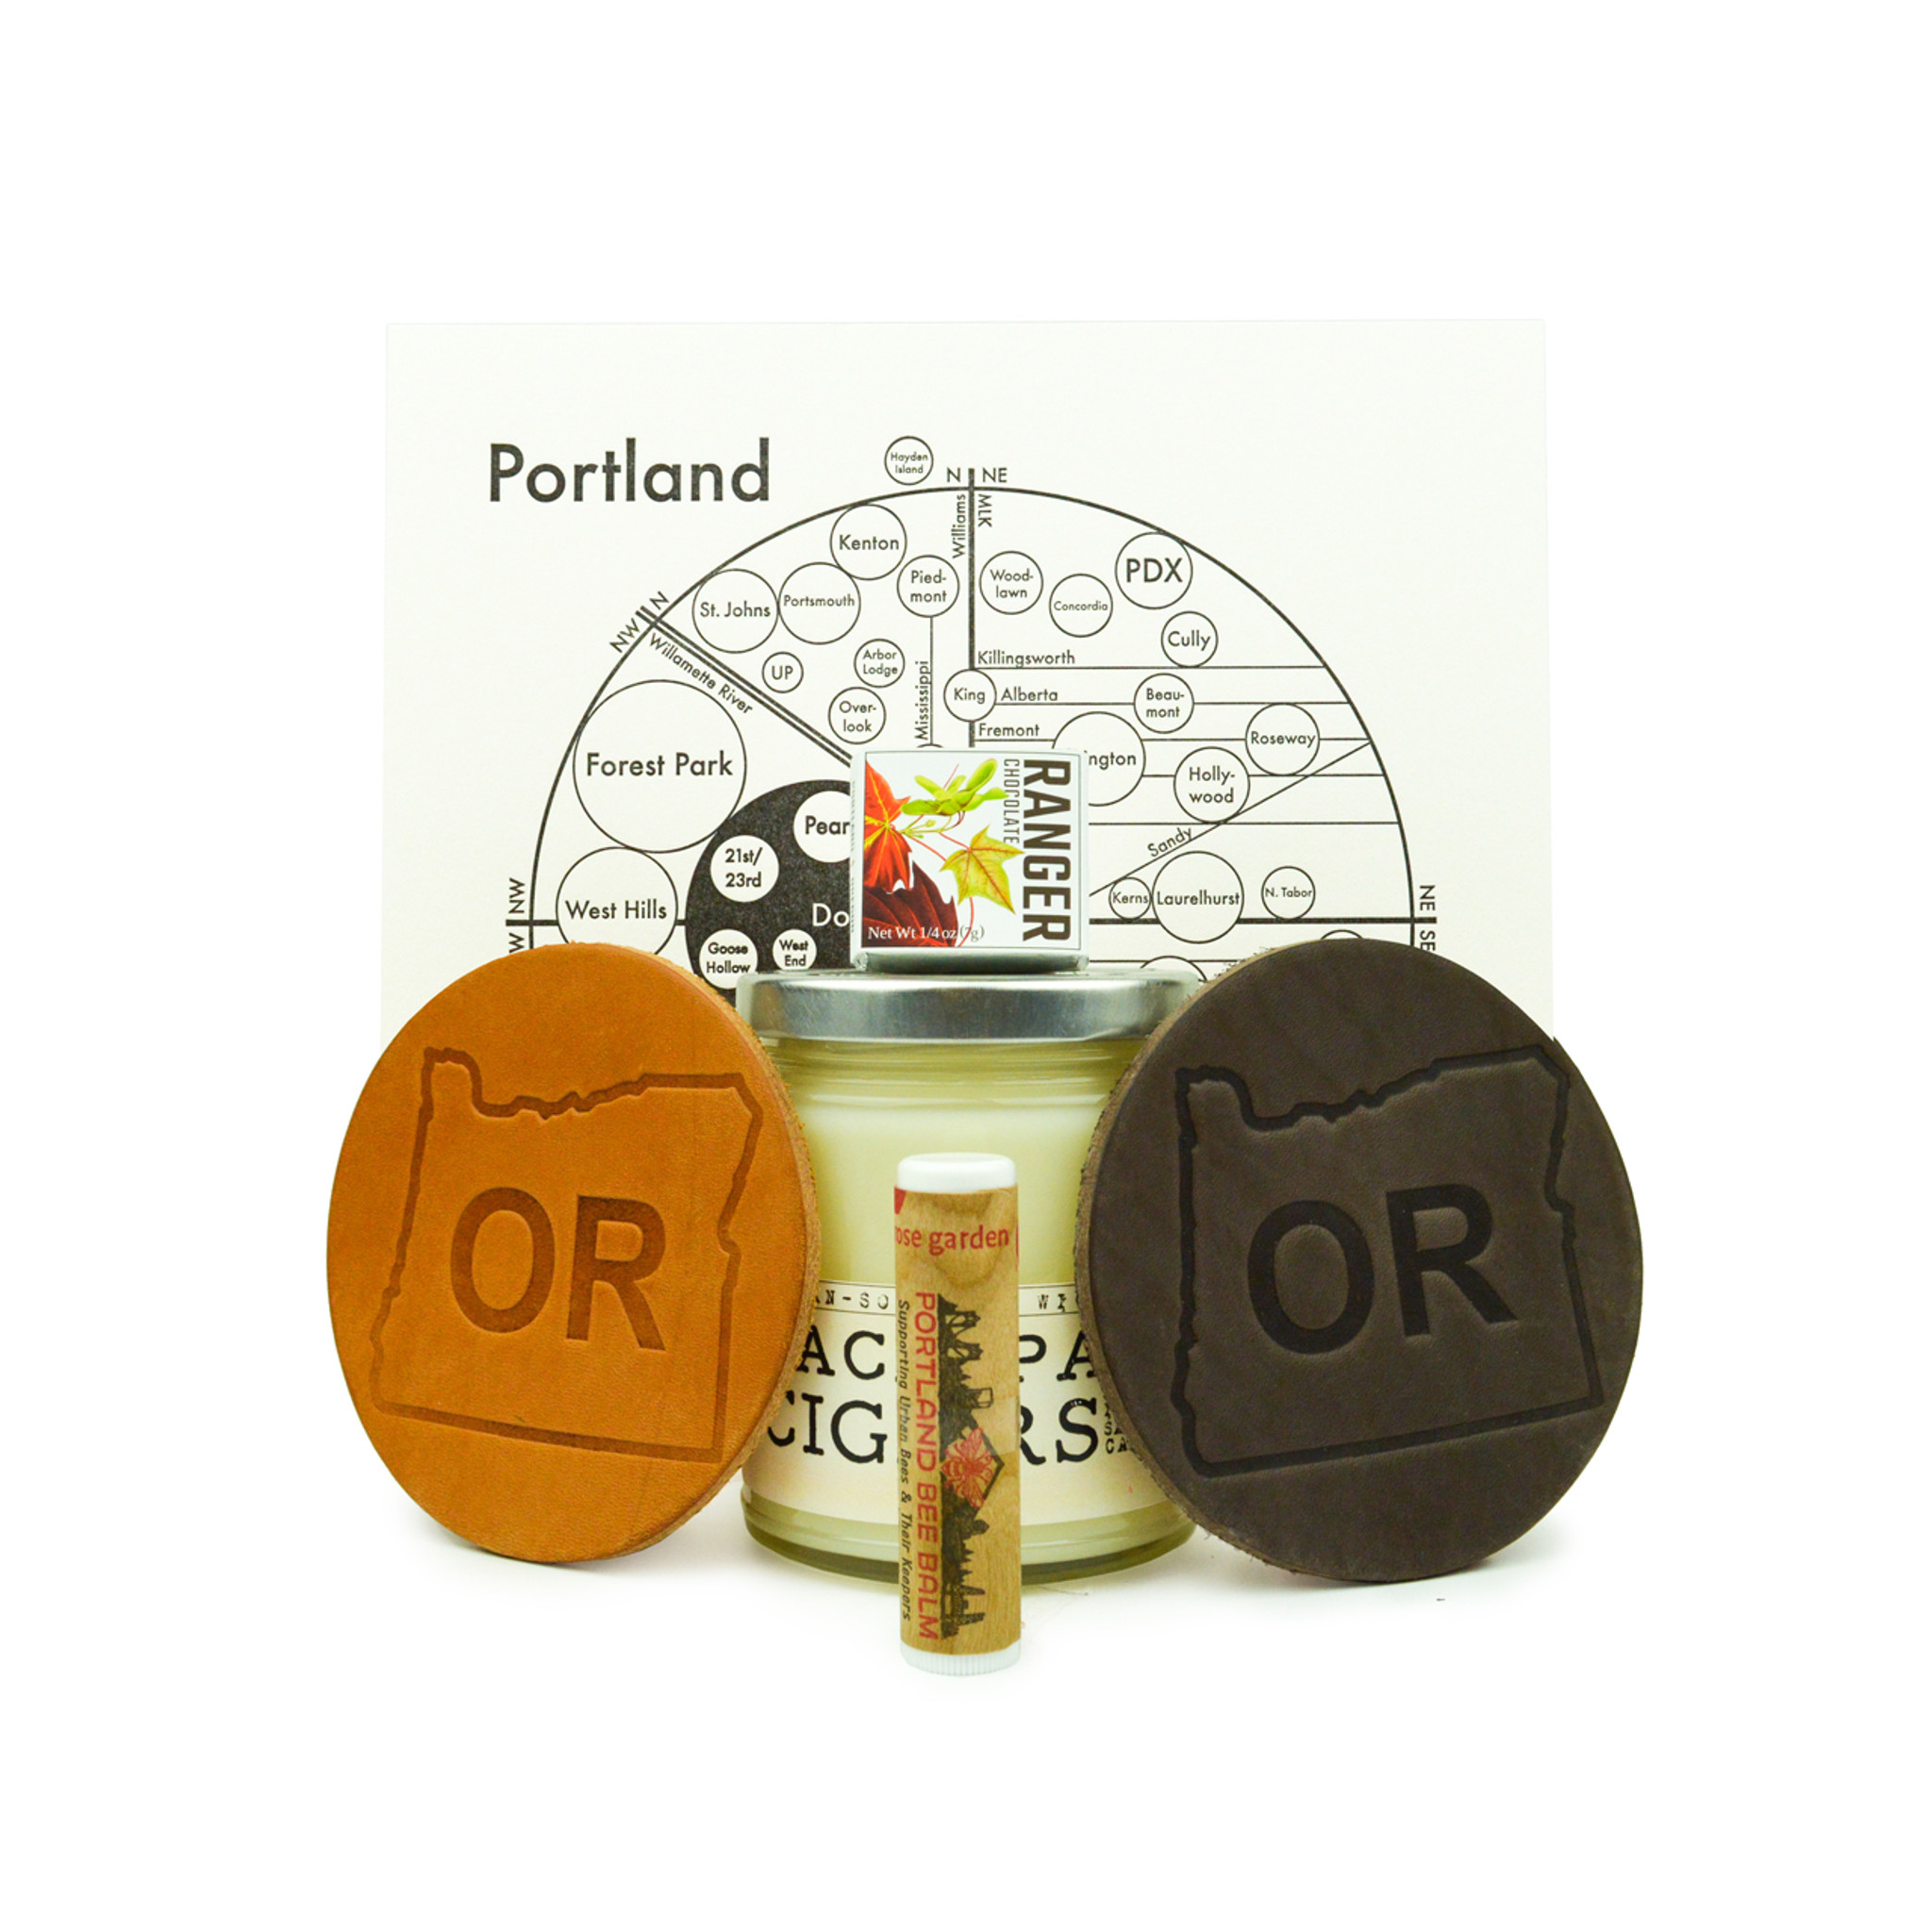 The Portland Pack